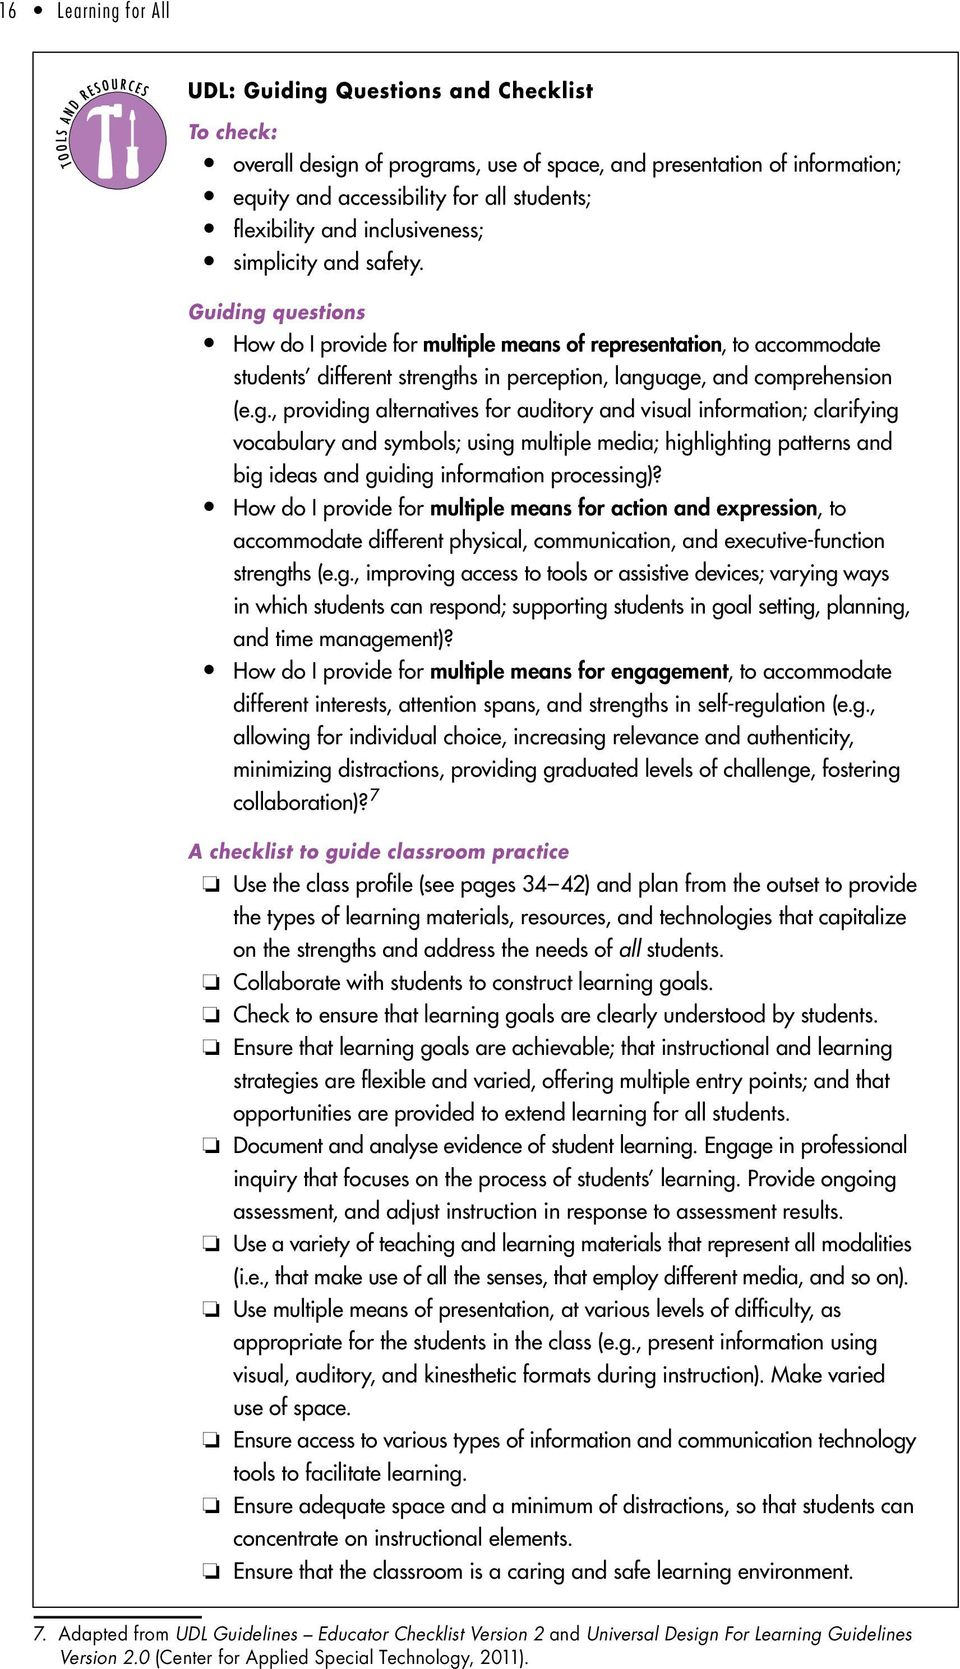 Guiding questions How do I provide for multiple means of representation, to accommodate students different strengths in perception, language, and comprehension (e.g., providing alternatives for auditory and visual information; clarifying vocabulary and symbols; using multiple media; highlighting patterns and big ideas and guiding information processing)?